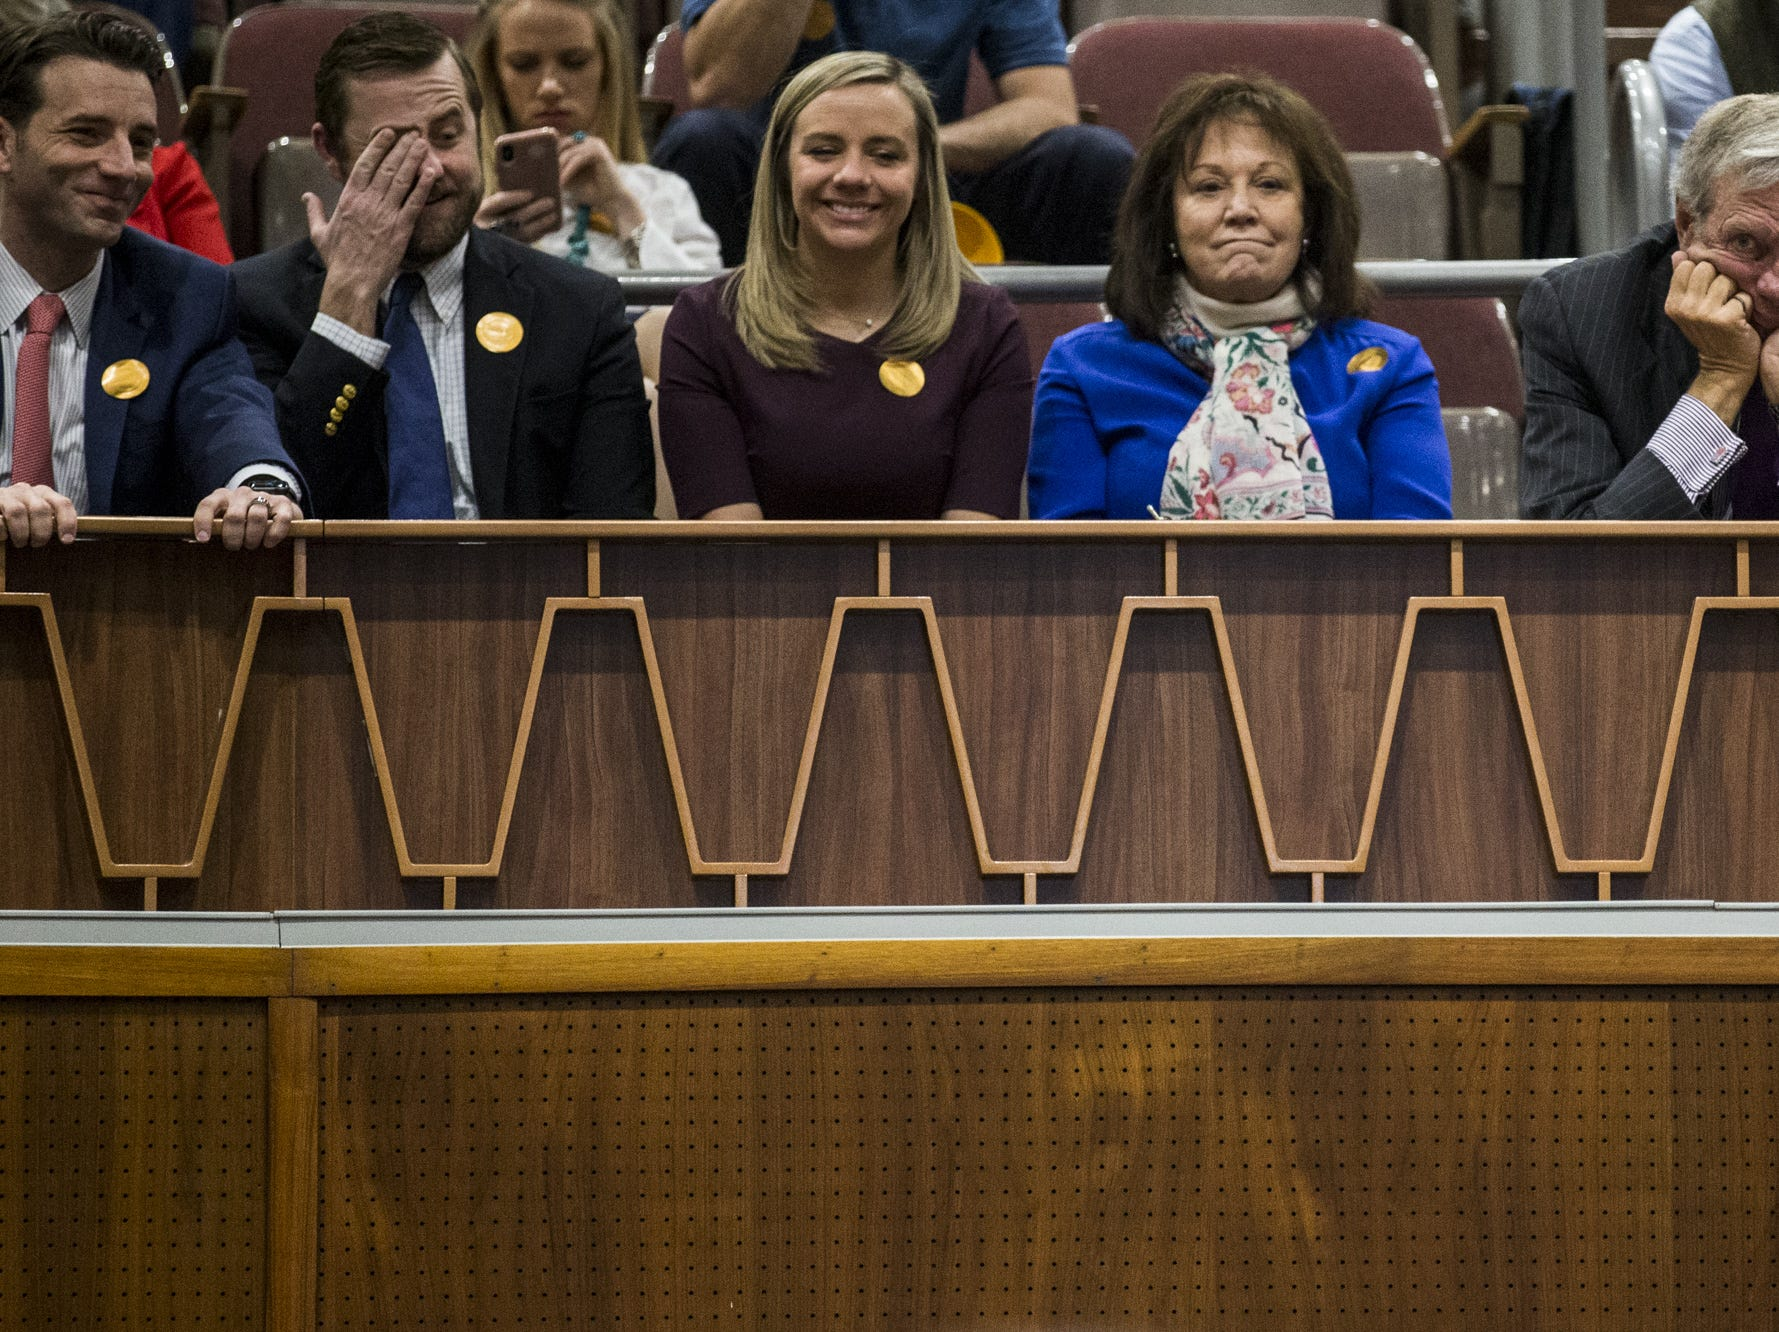 People sit in the gallery before Gov. Doug Ducey's State of the State address on  Jan. 14, 2019, at the Arizona House of Representatives Chambers in Phoenix.